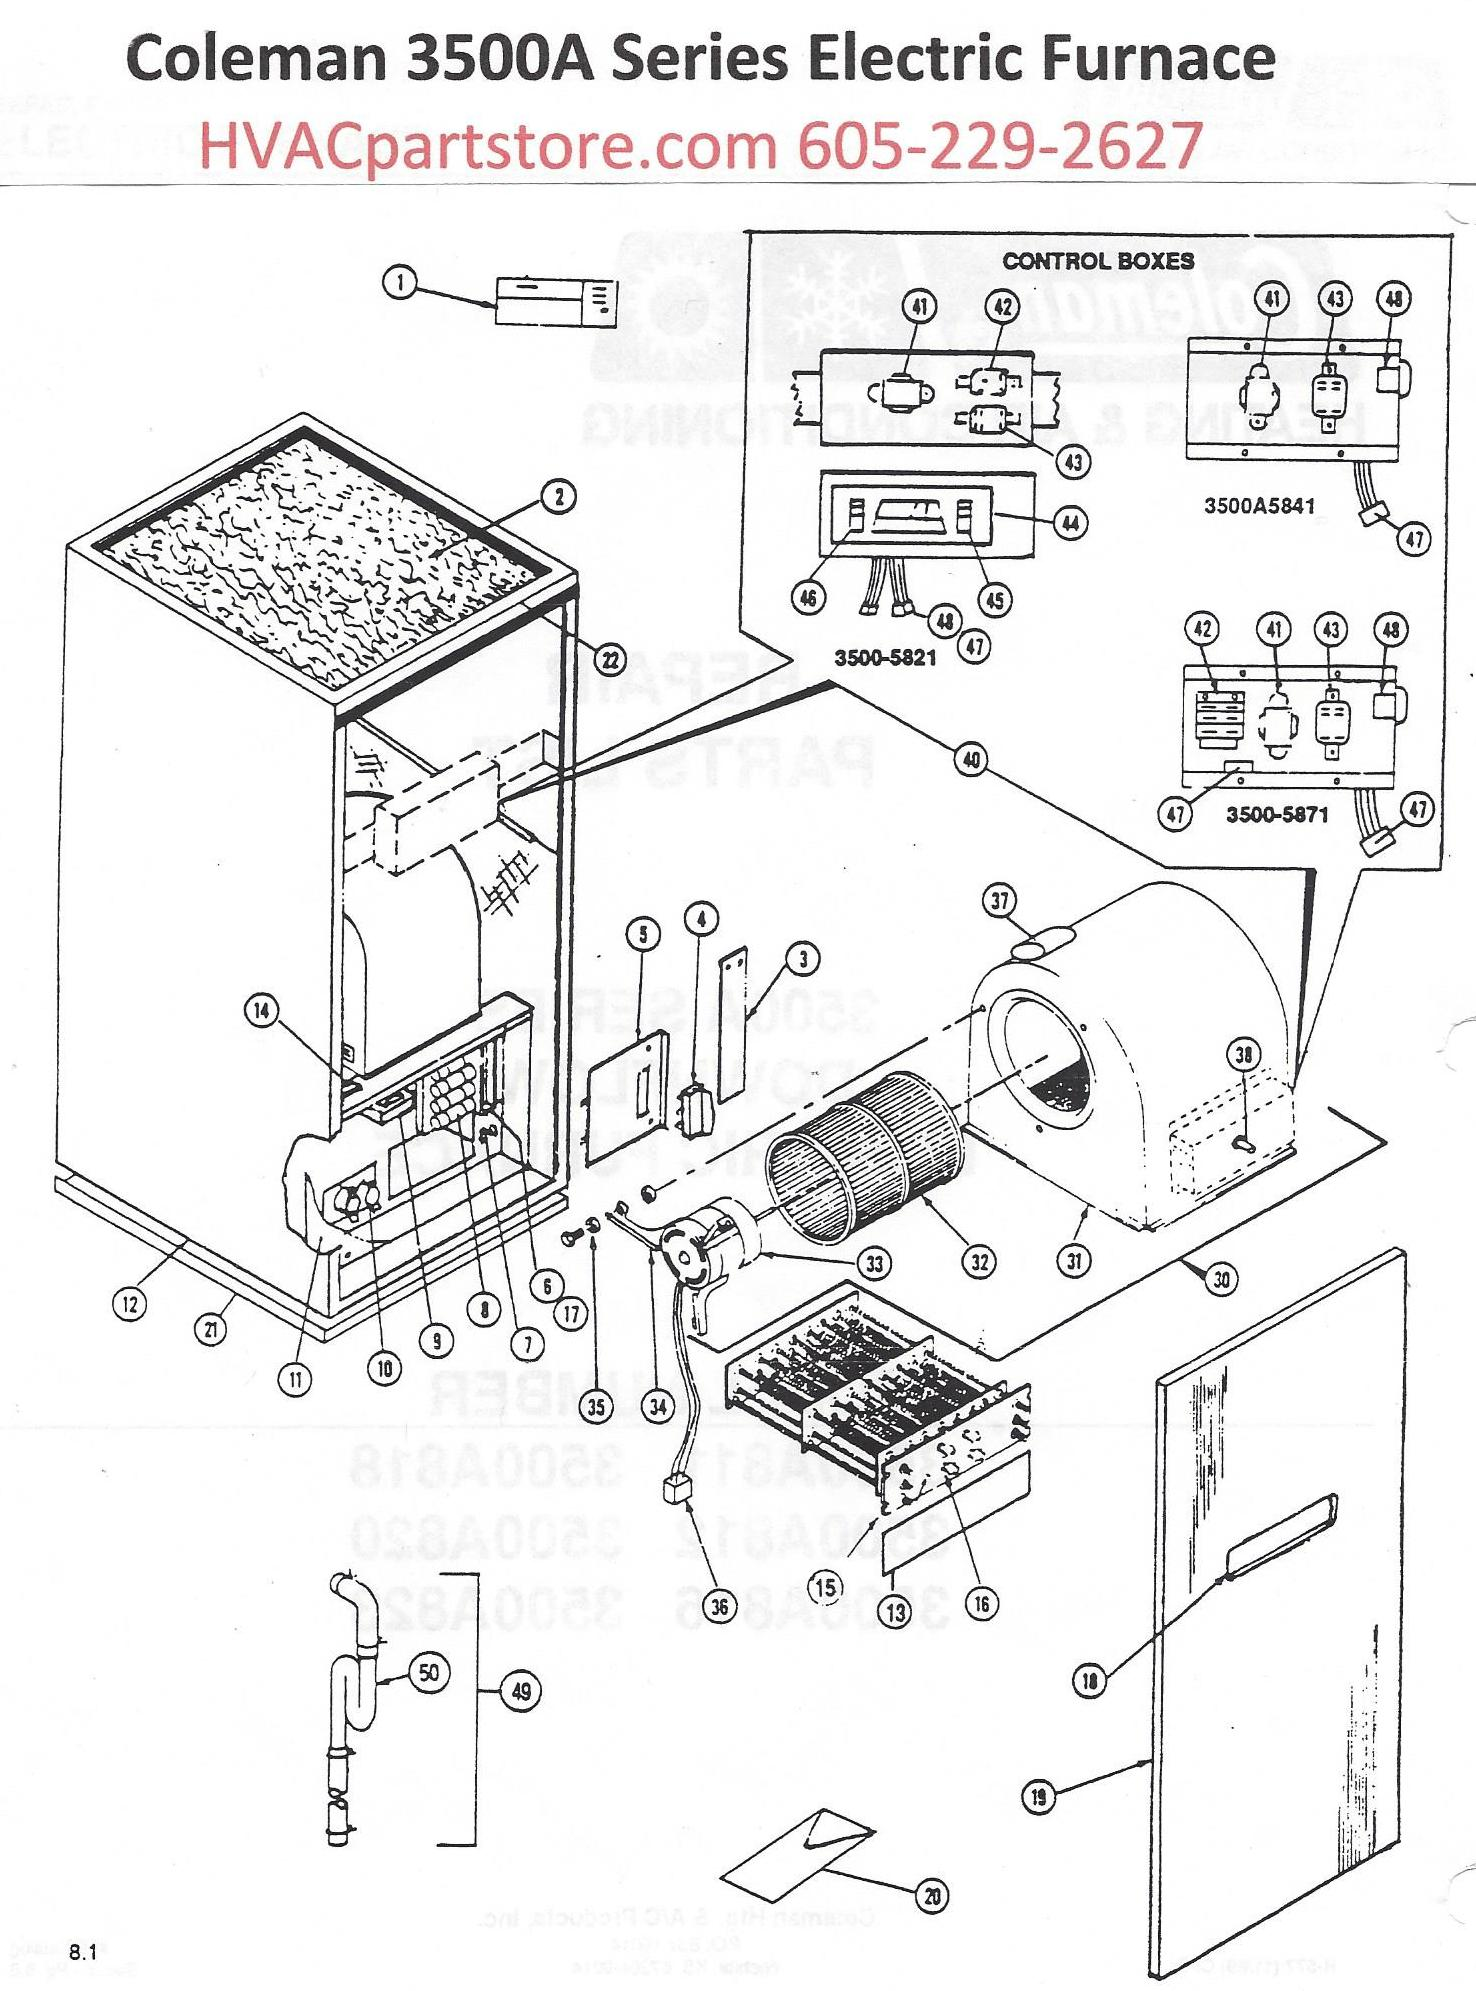 a coleman electric furnace parts hvacpartstore click here to view an installation manual which includes wiring diagrams